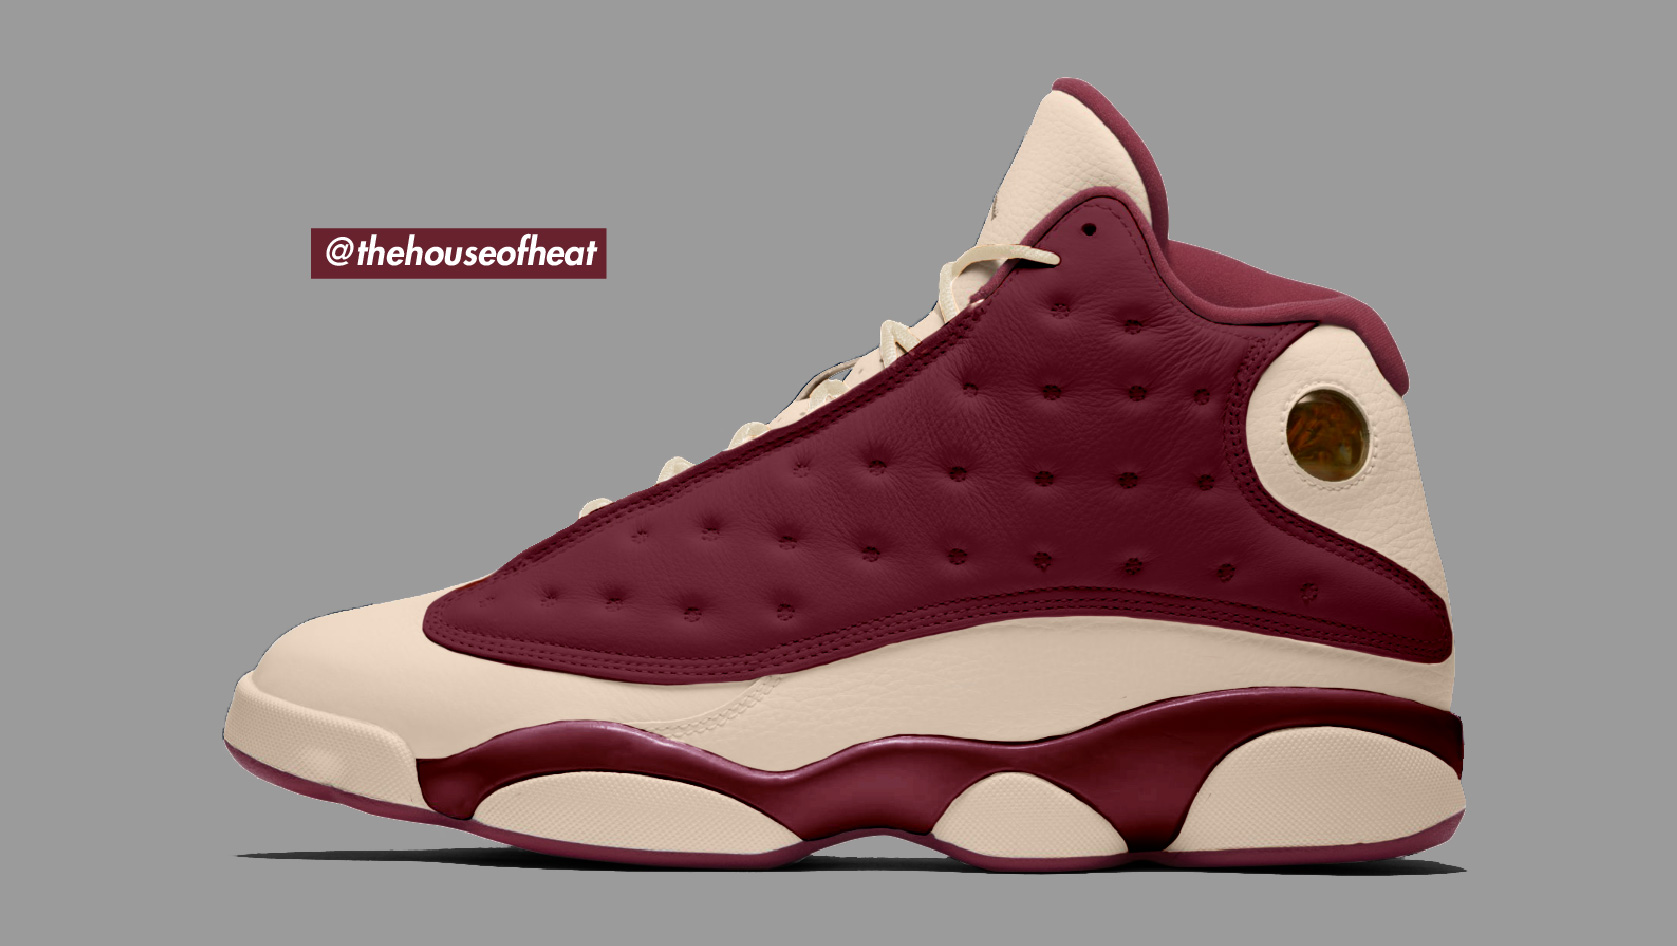 premium selection cfc0f 1c4b3 Today's Concept : Air Jordan 13